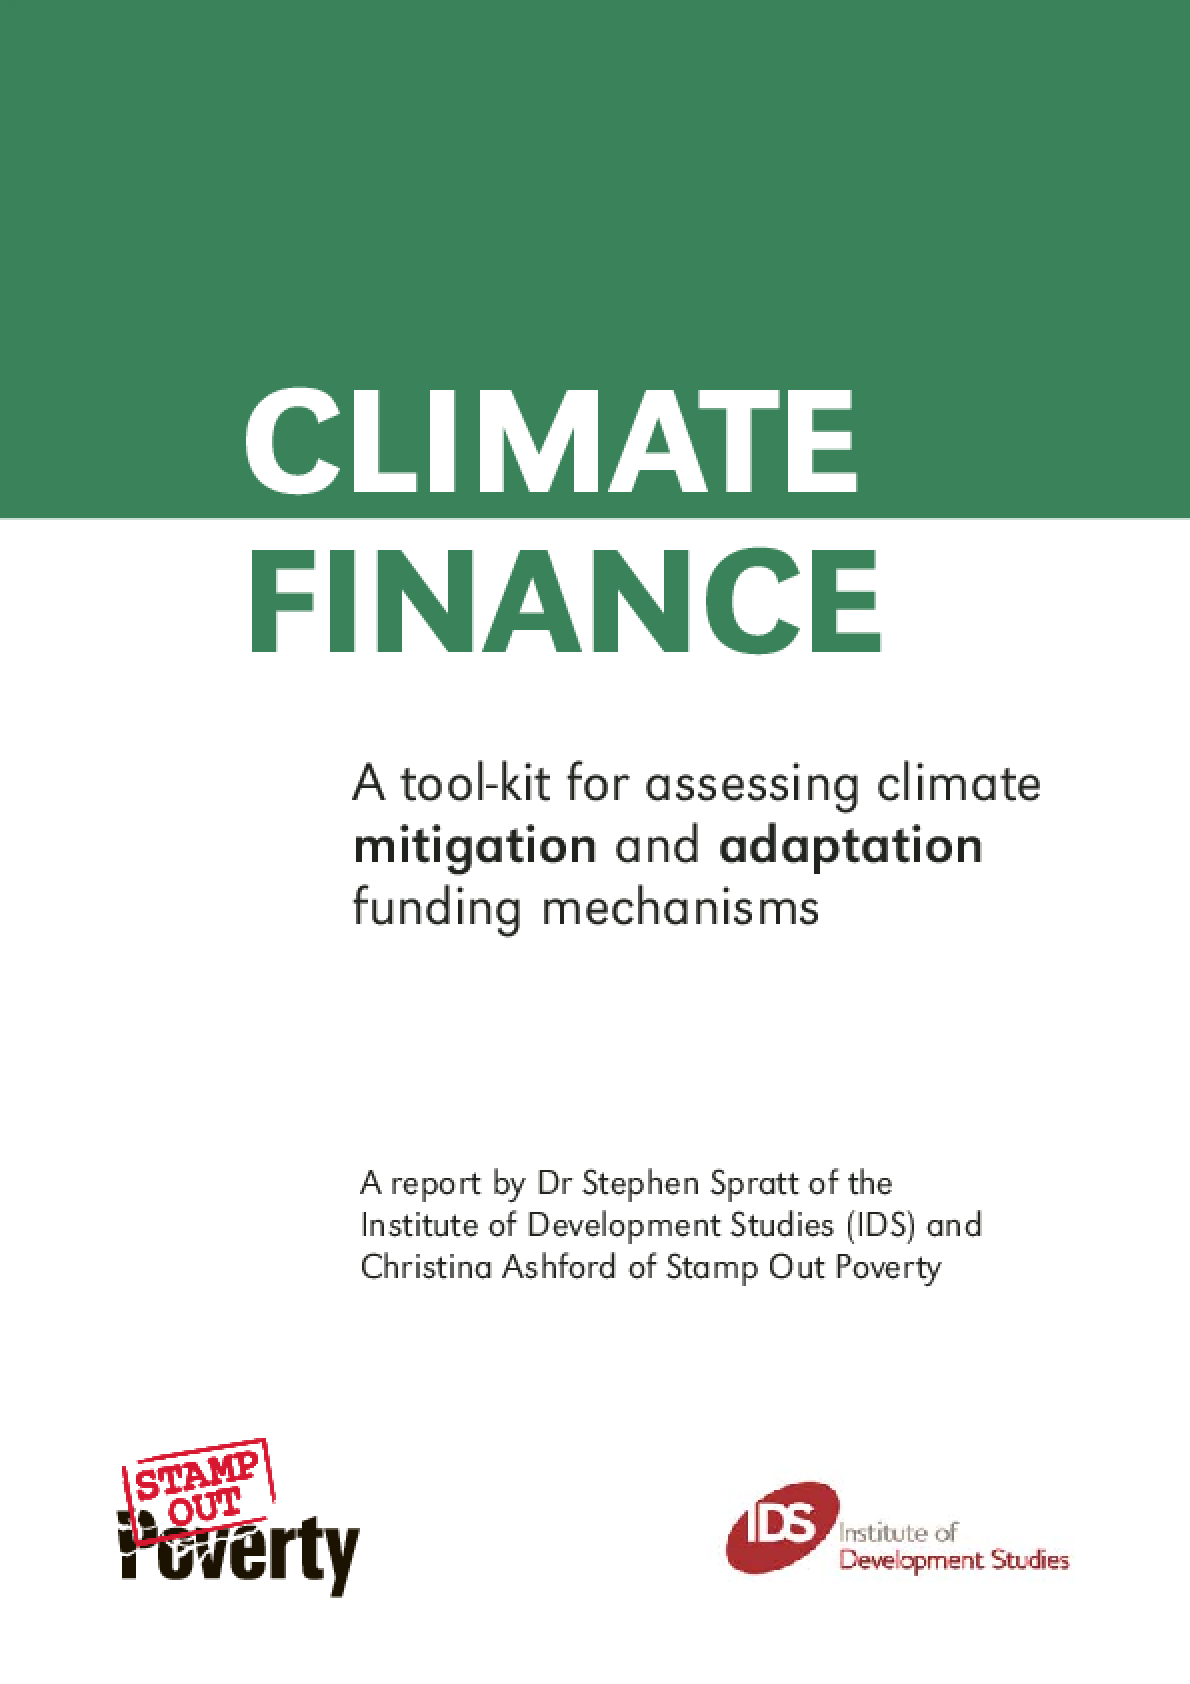 Climate Finance: A tool-kit for assessing climate mitigation and adaptation funding mechanisms